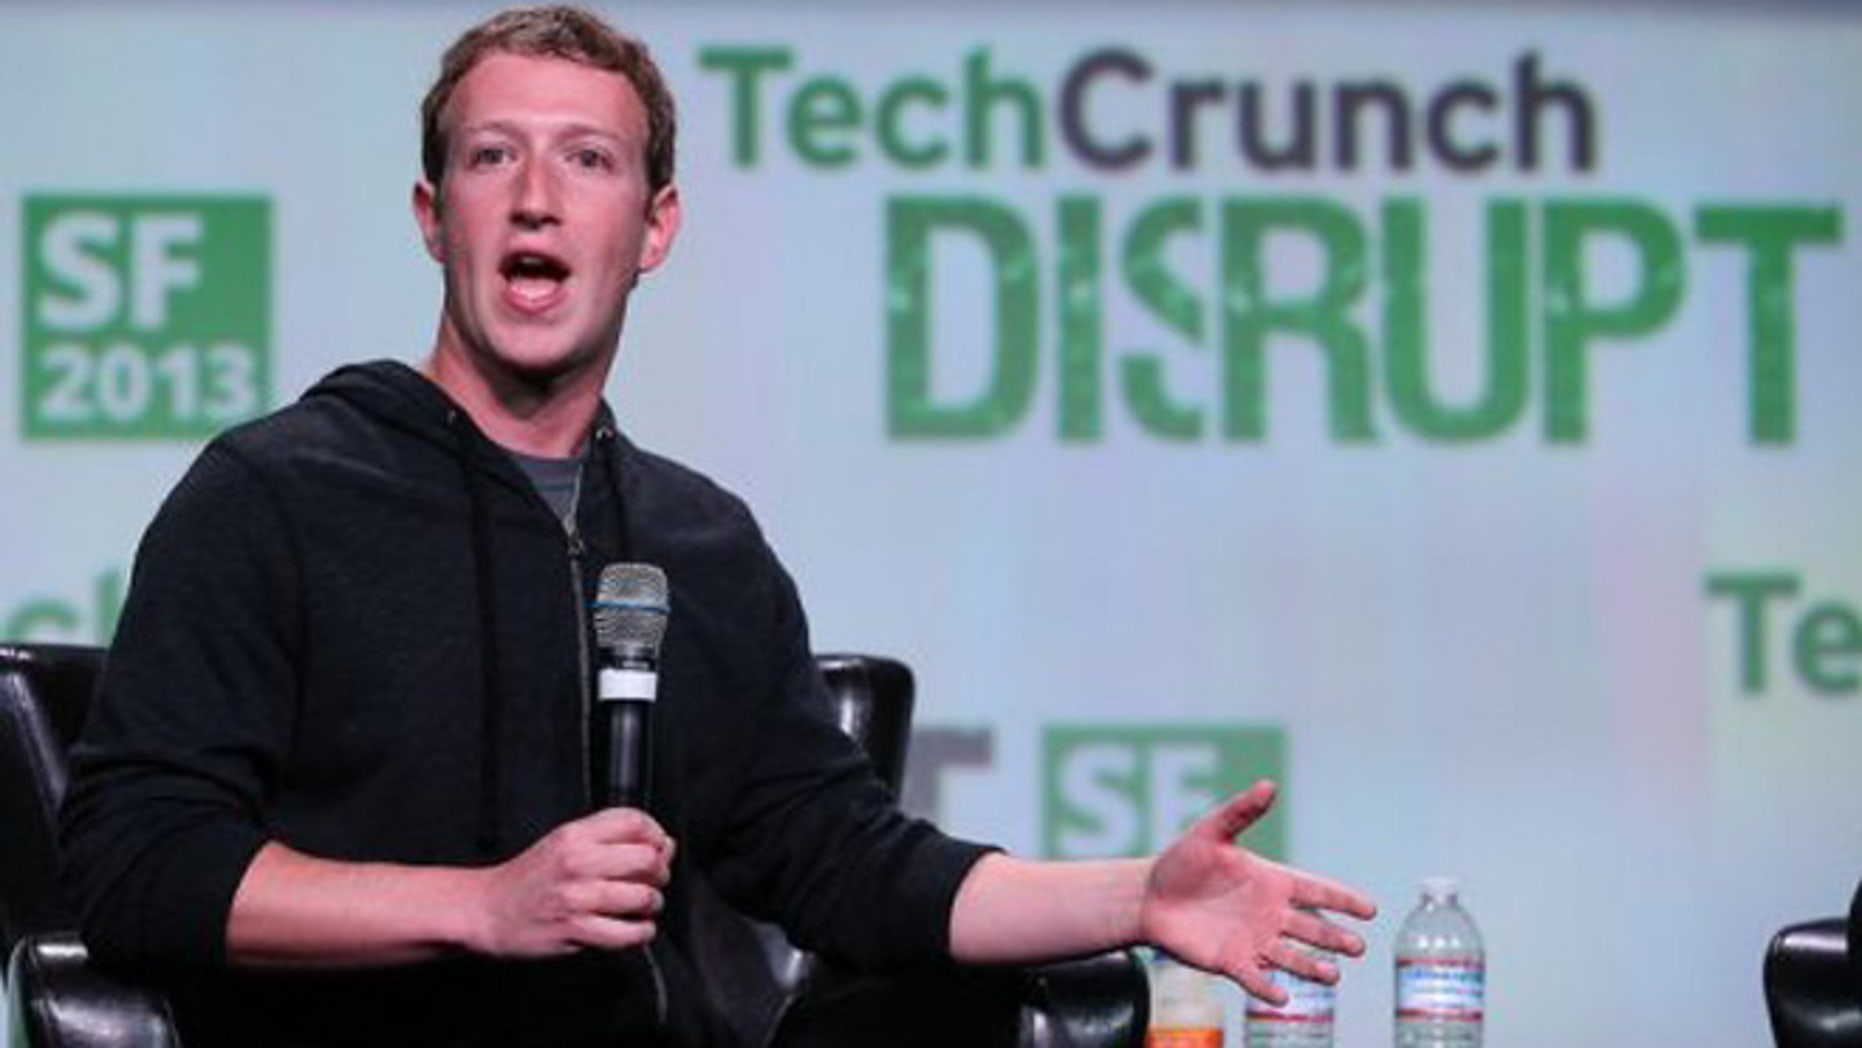 Sept. 11, 2013: Facebook founder and CEO Mark Zuckerberg speaks during the 2013 TechCrunch Disrupt conference.